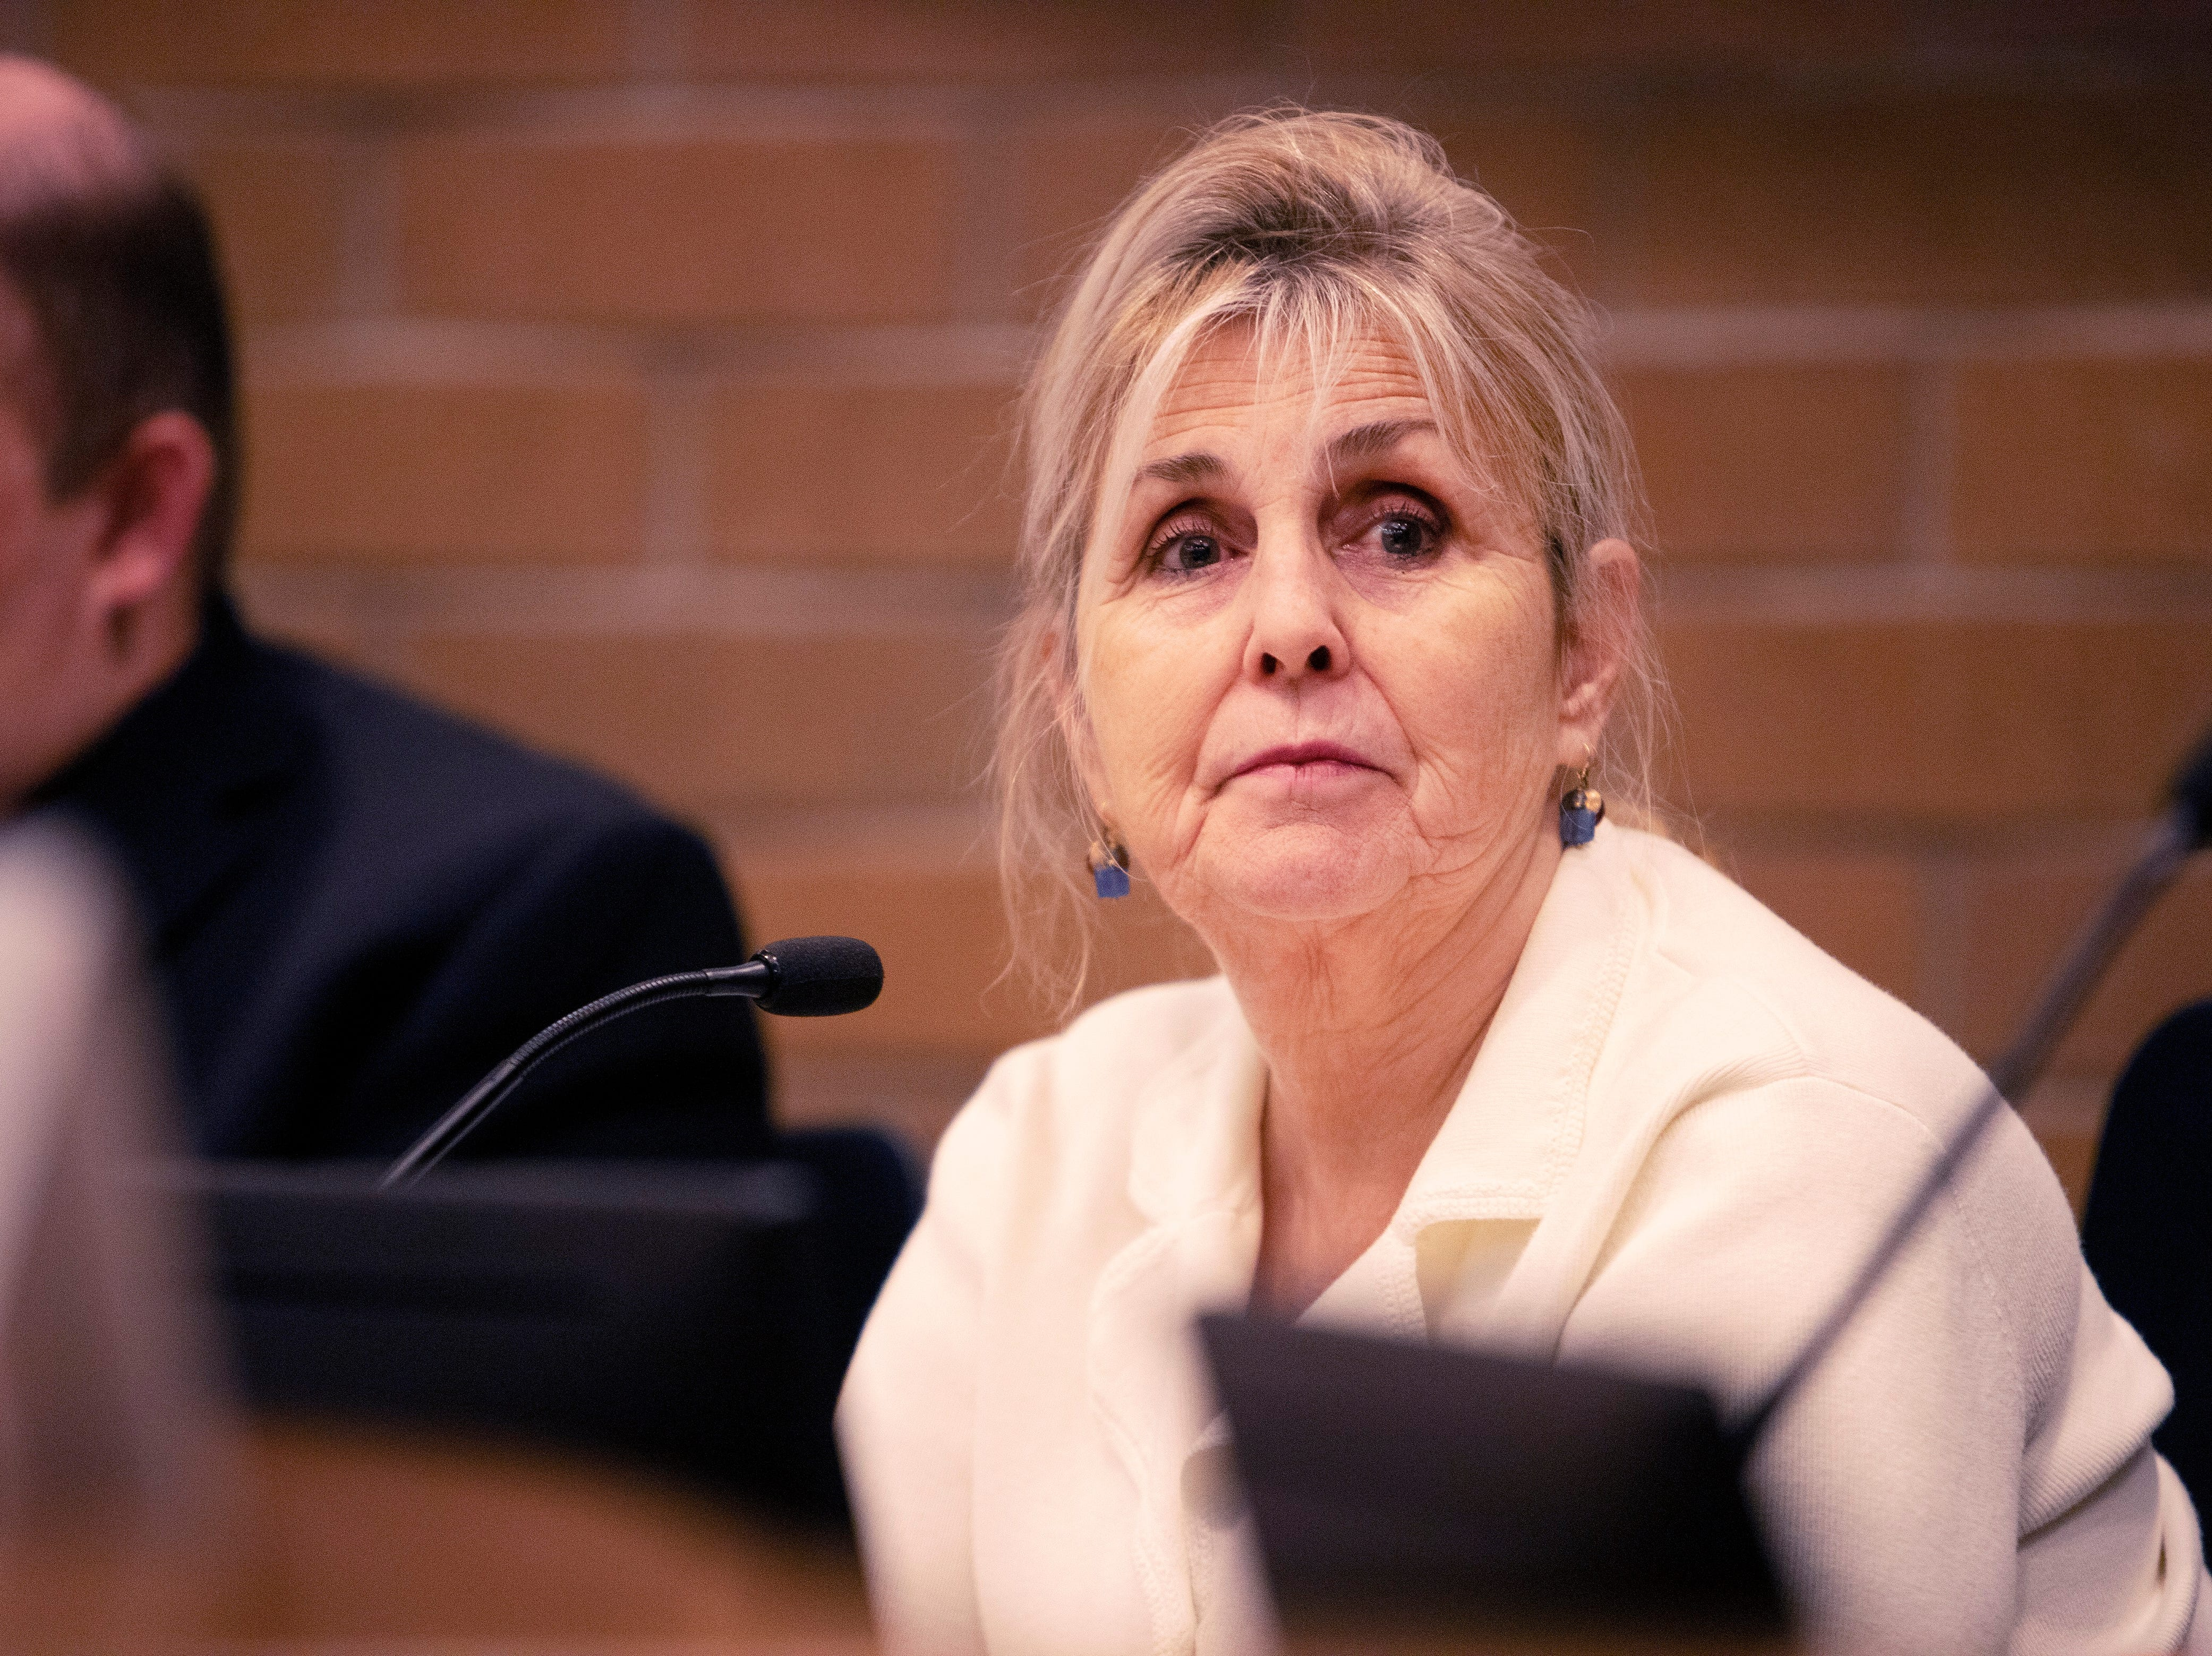 City Council candidate Susan Holmes participates in the candidate forum hosted by The League of  Women Voters of Larimer County at City Hall on March 6.